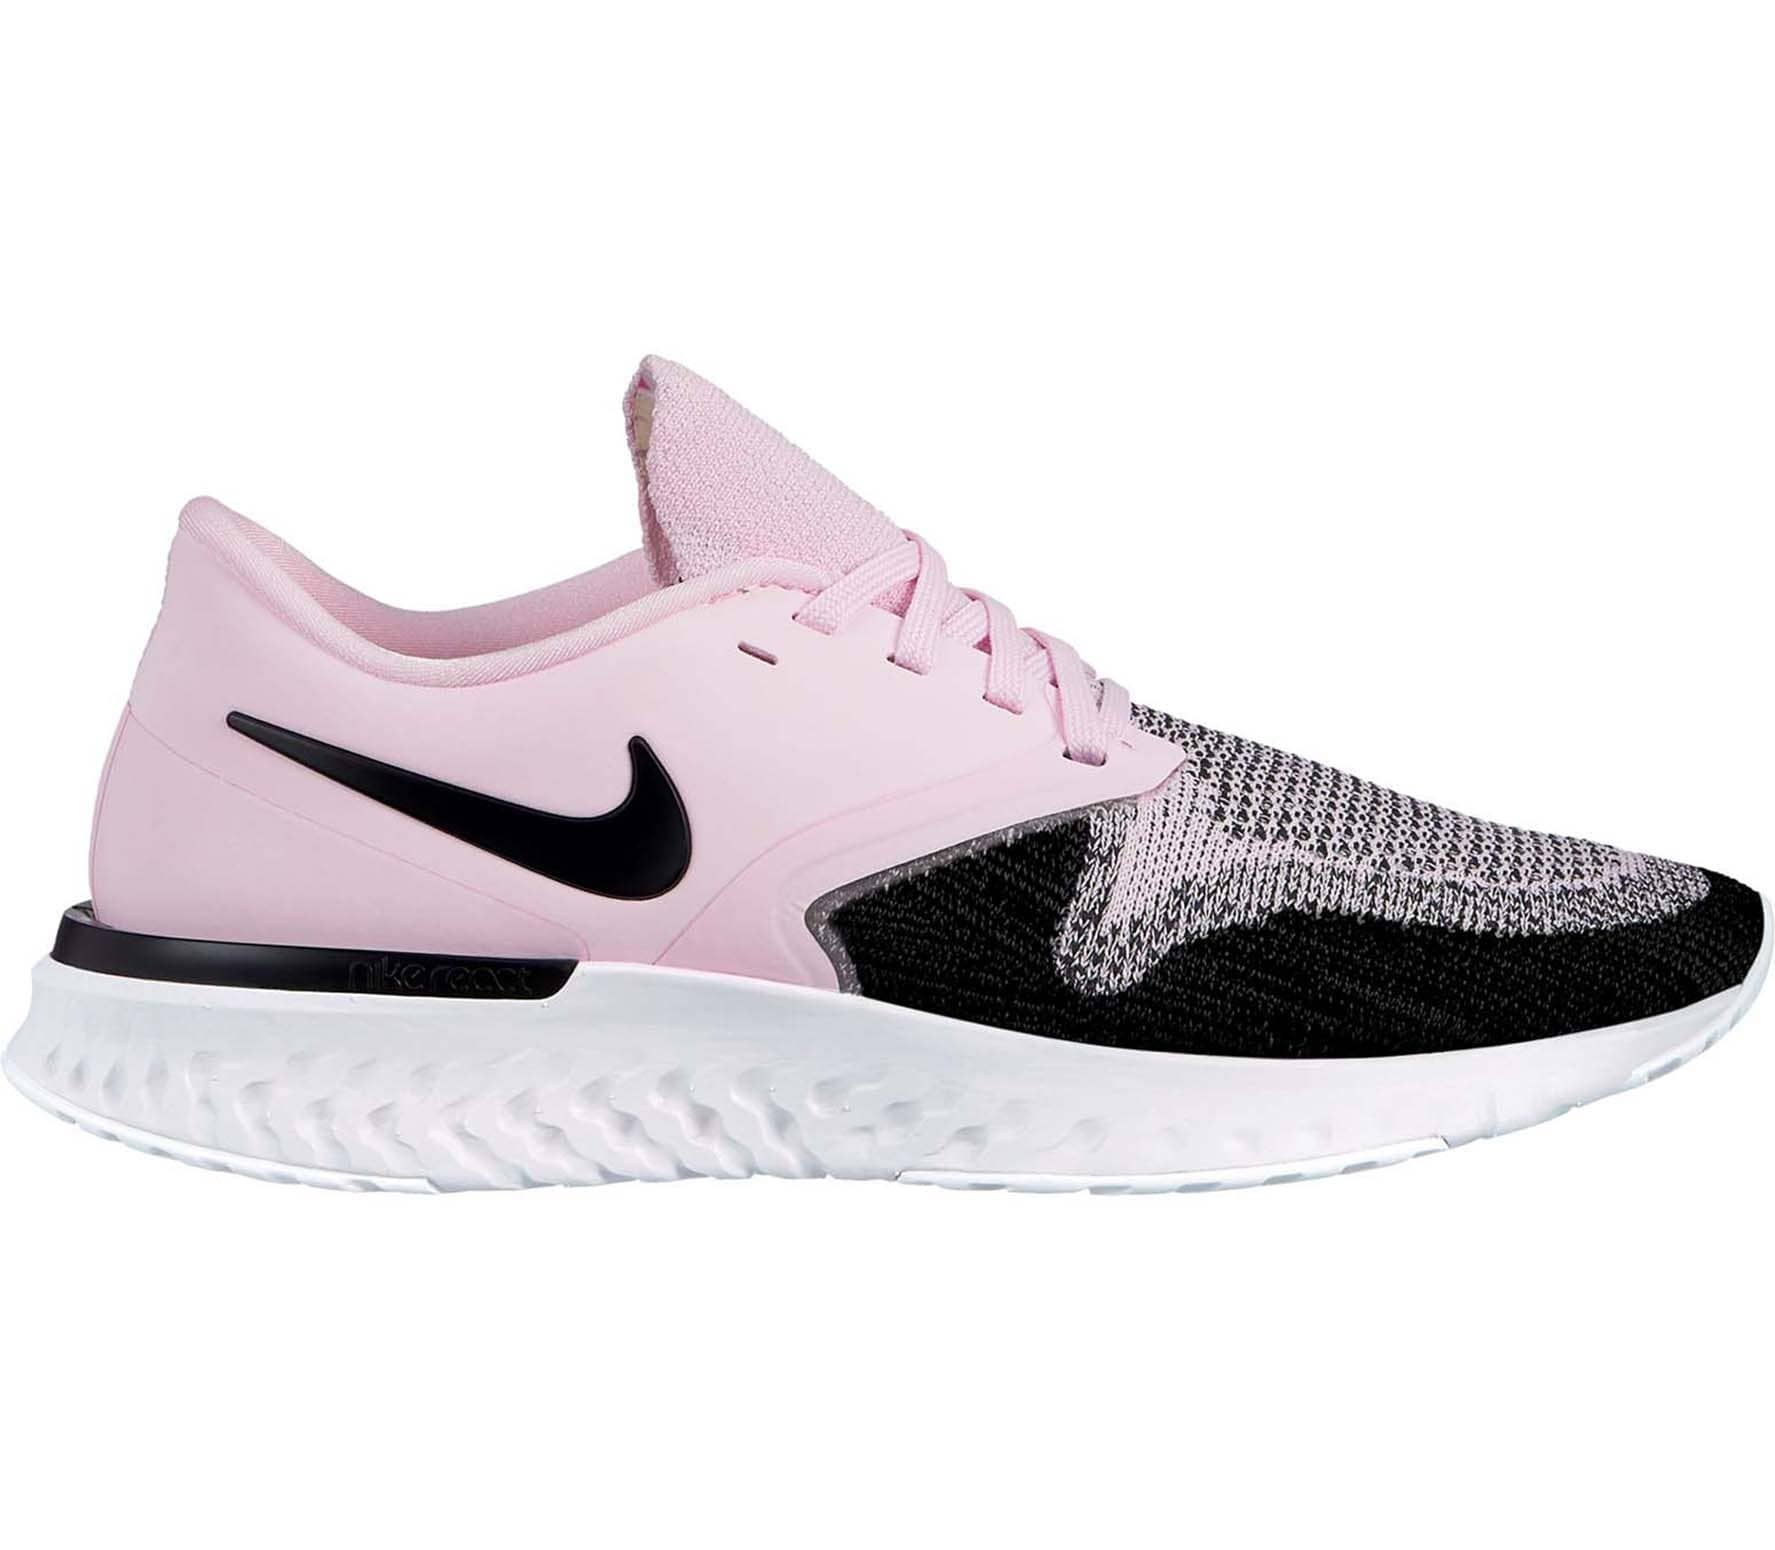 Nike - Odyssey React Flyknit 2 women s running shoes (pink black ... 7218682cc